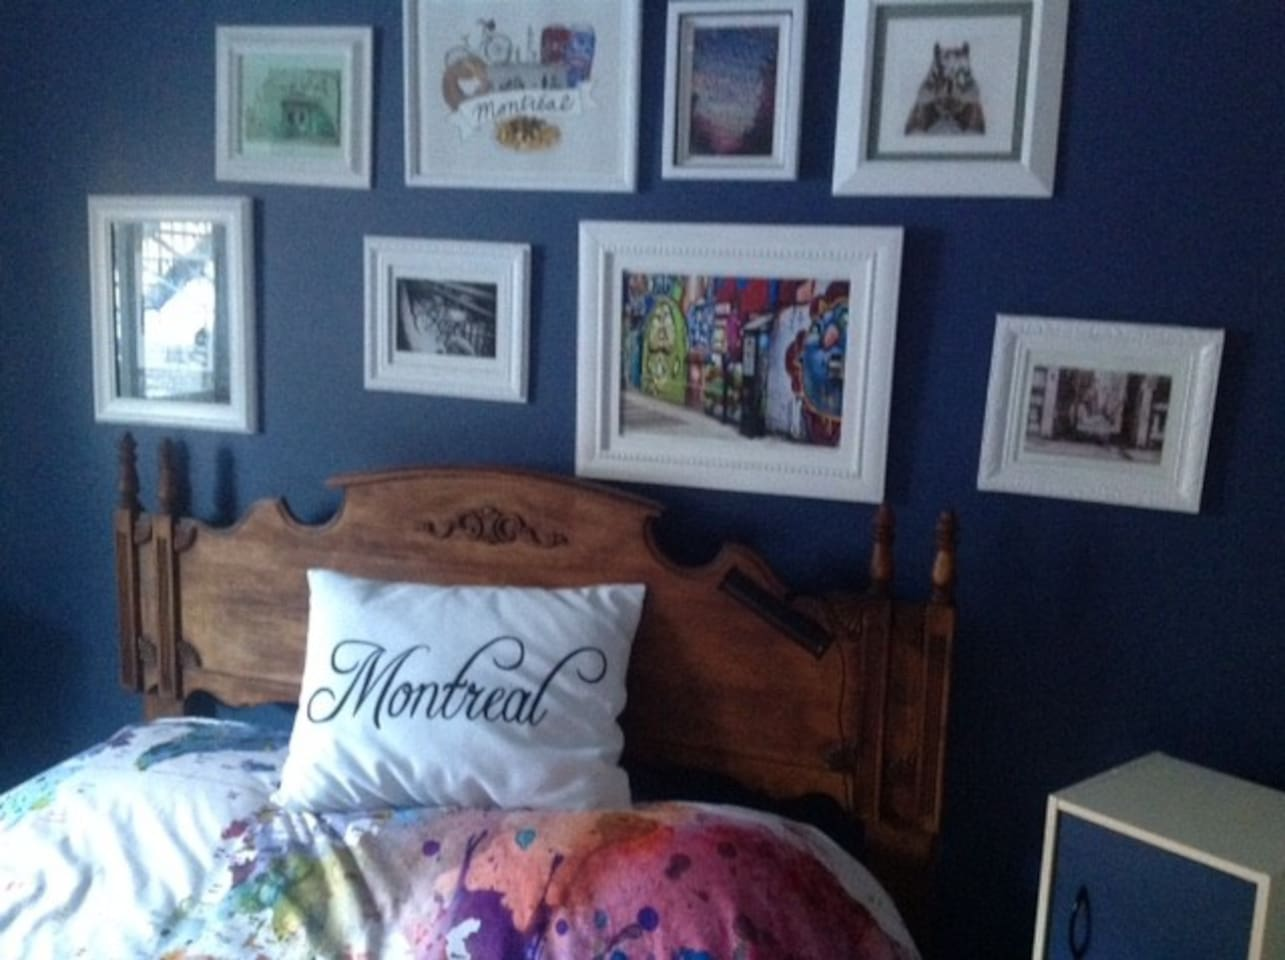 Votre chambre - nouveau décor 2017. Your room redecorated for 2017.